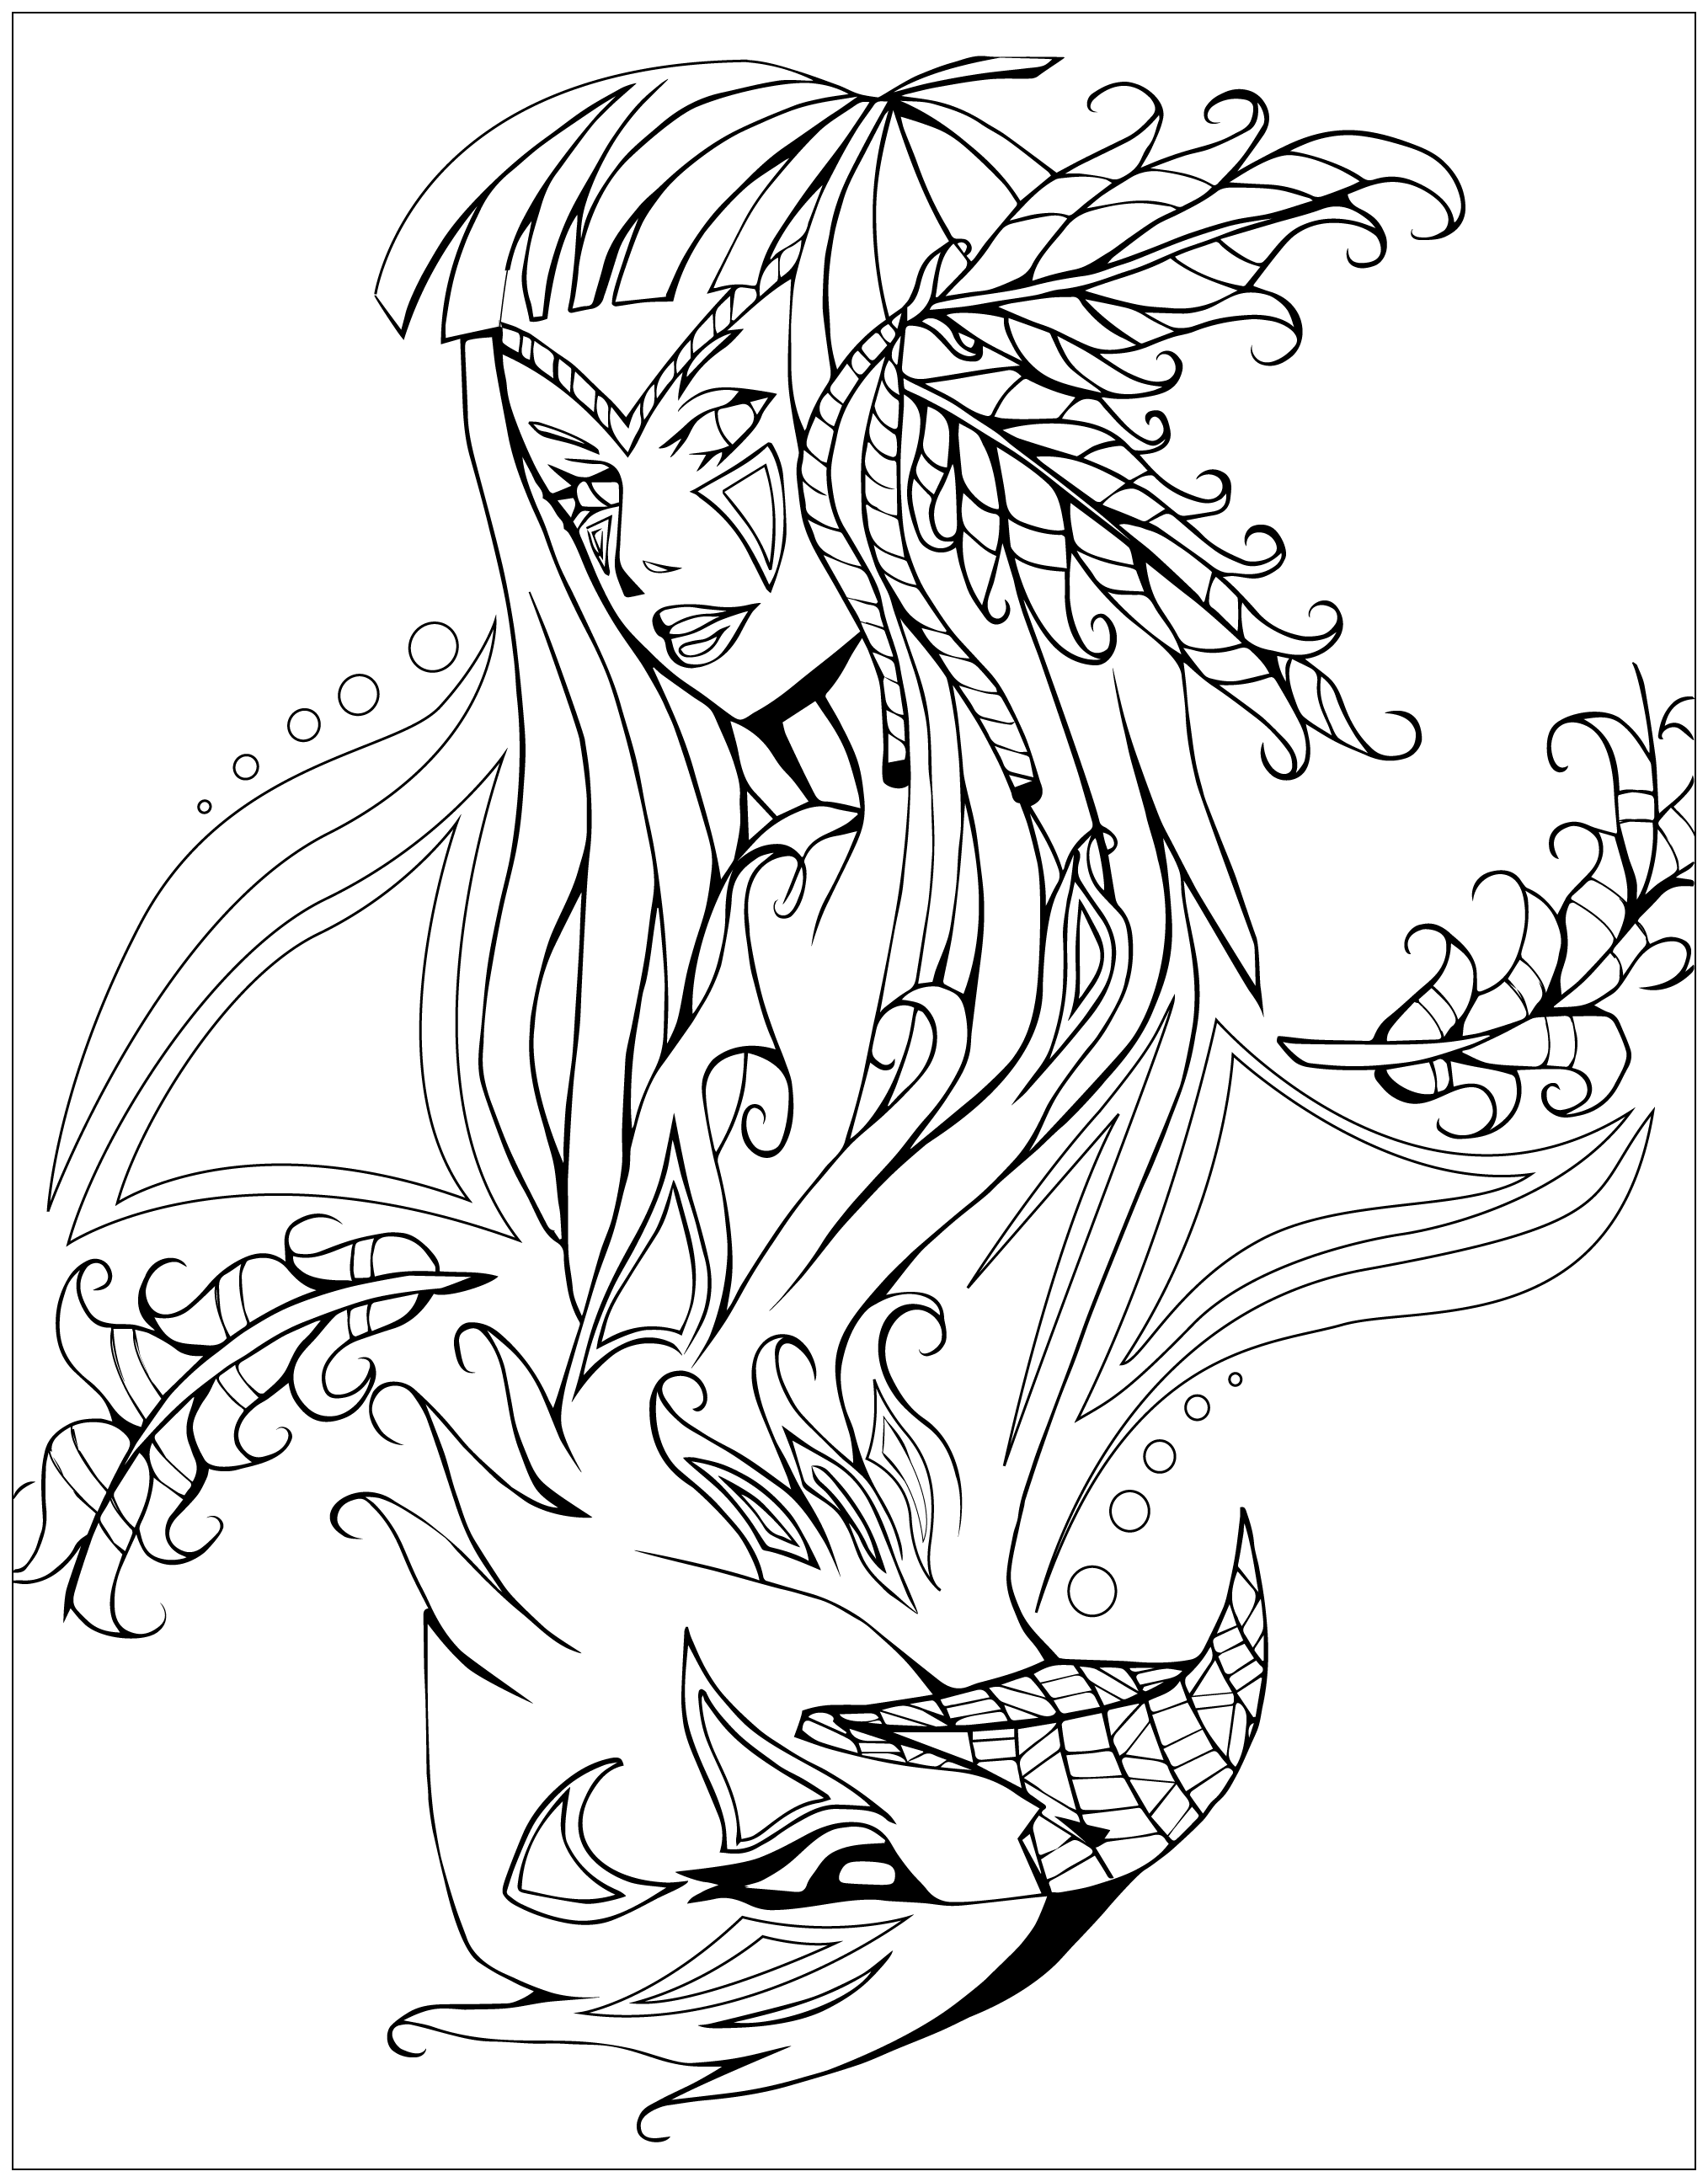 native american indian coloring pages - native american indian savage spirit native american